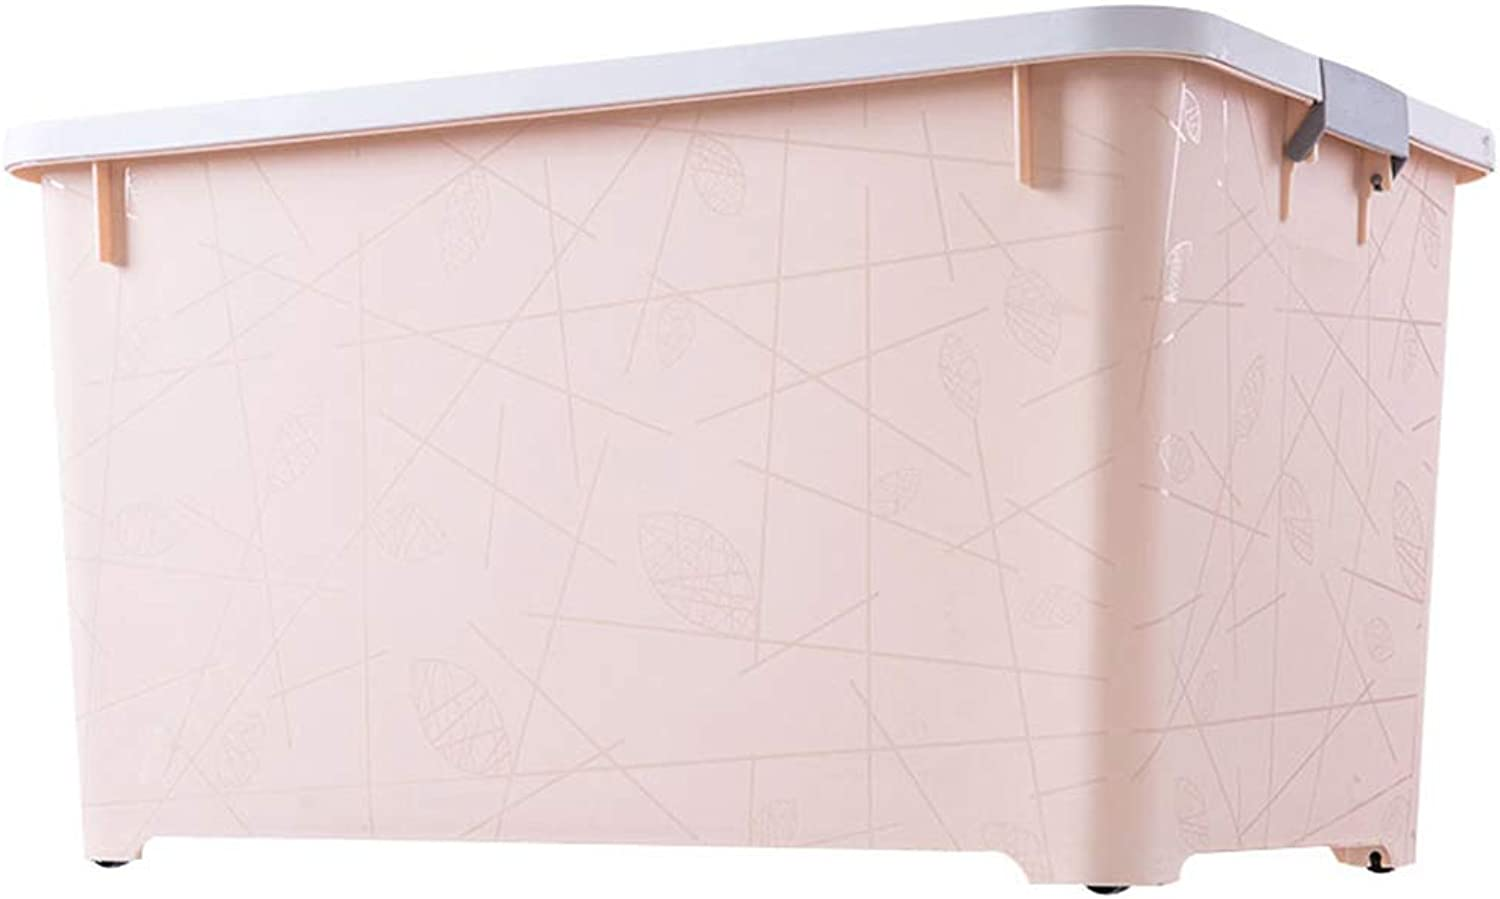 Storage Box Storage Bins Baskets Toy Box Home Containers Cubes Bin Box Gift Baskets Storage Ches-Oversized Thick Plastic Covered Belt Pulley JINRONG (color   Peach Pollen, Size   42  31  28.5cm)